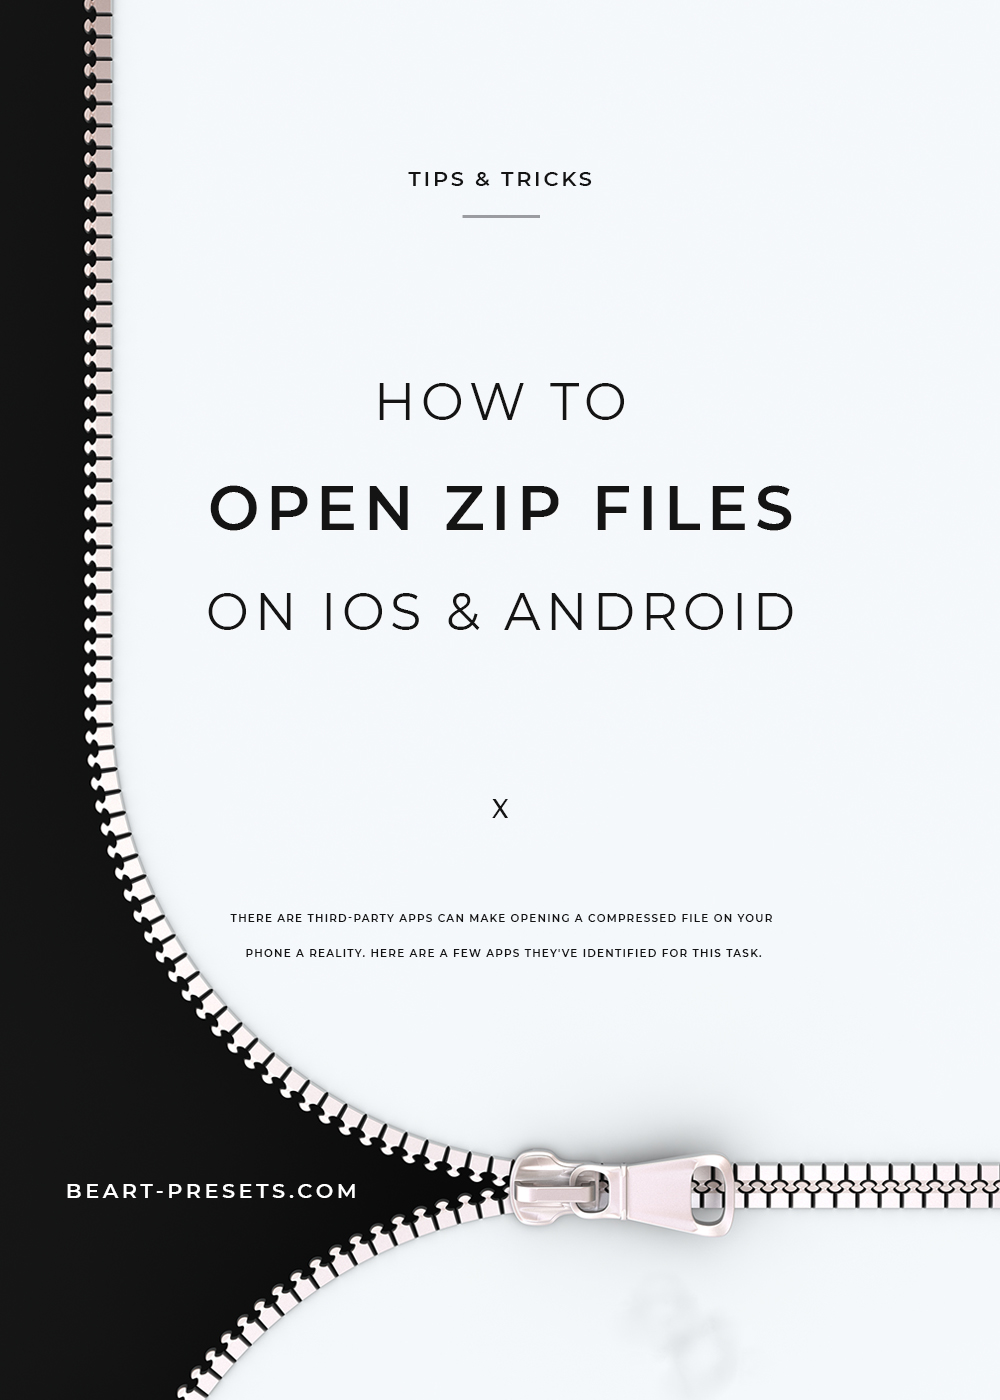 open zip files.jpg